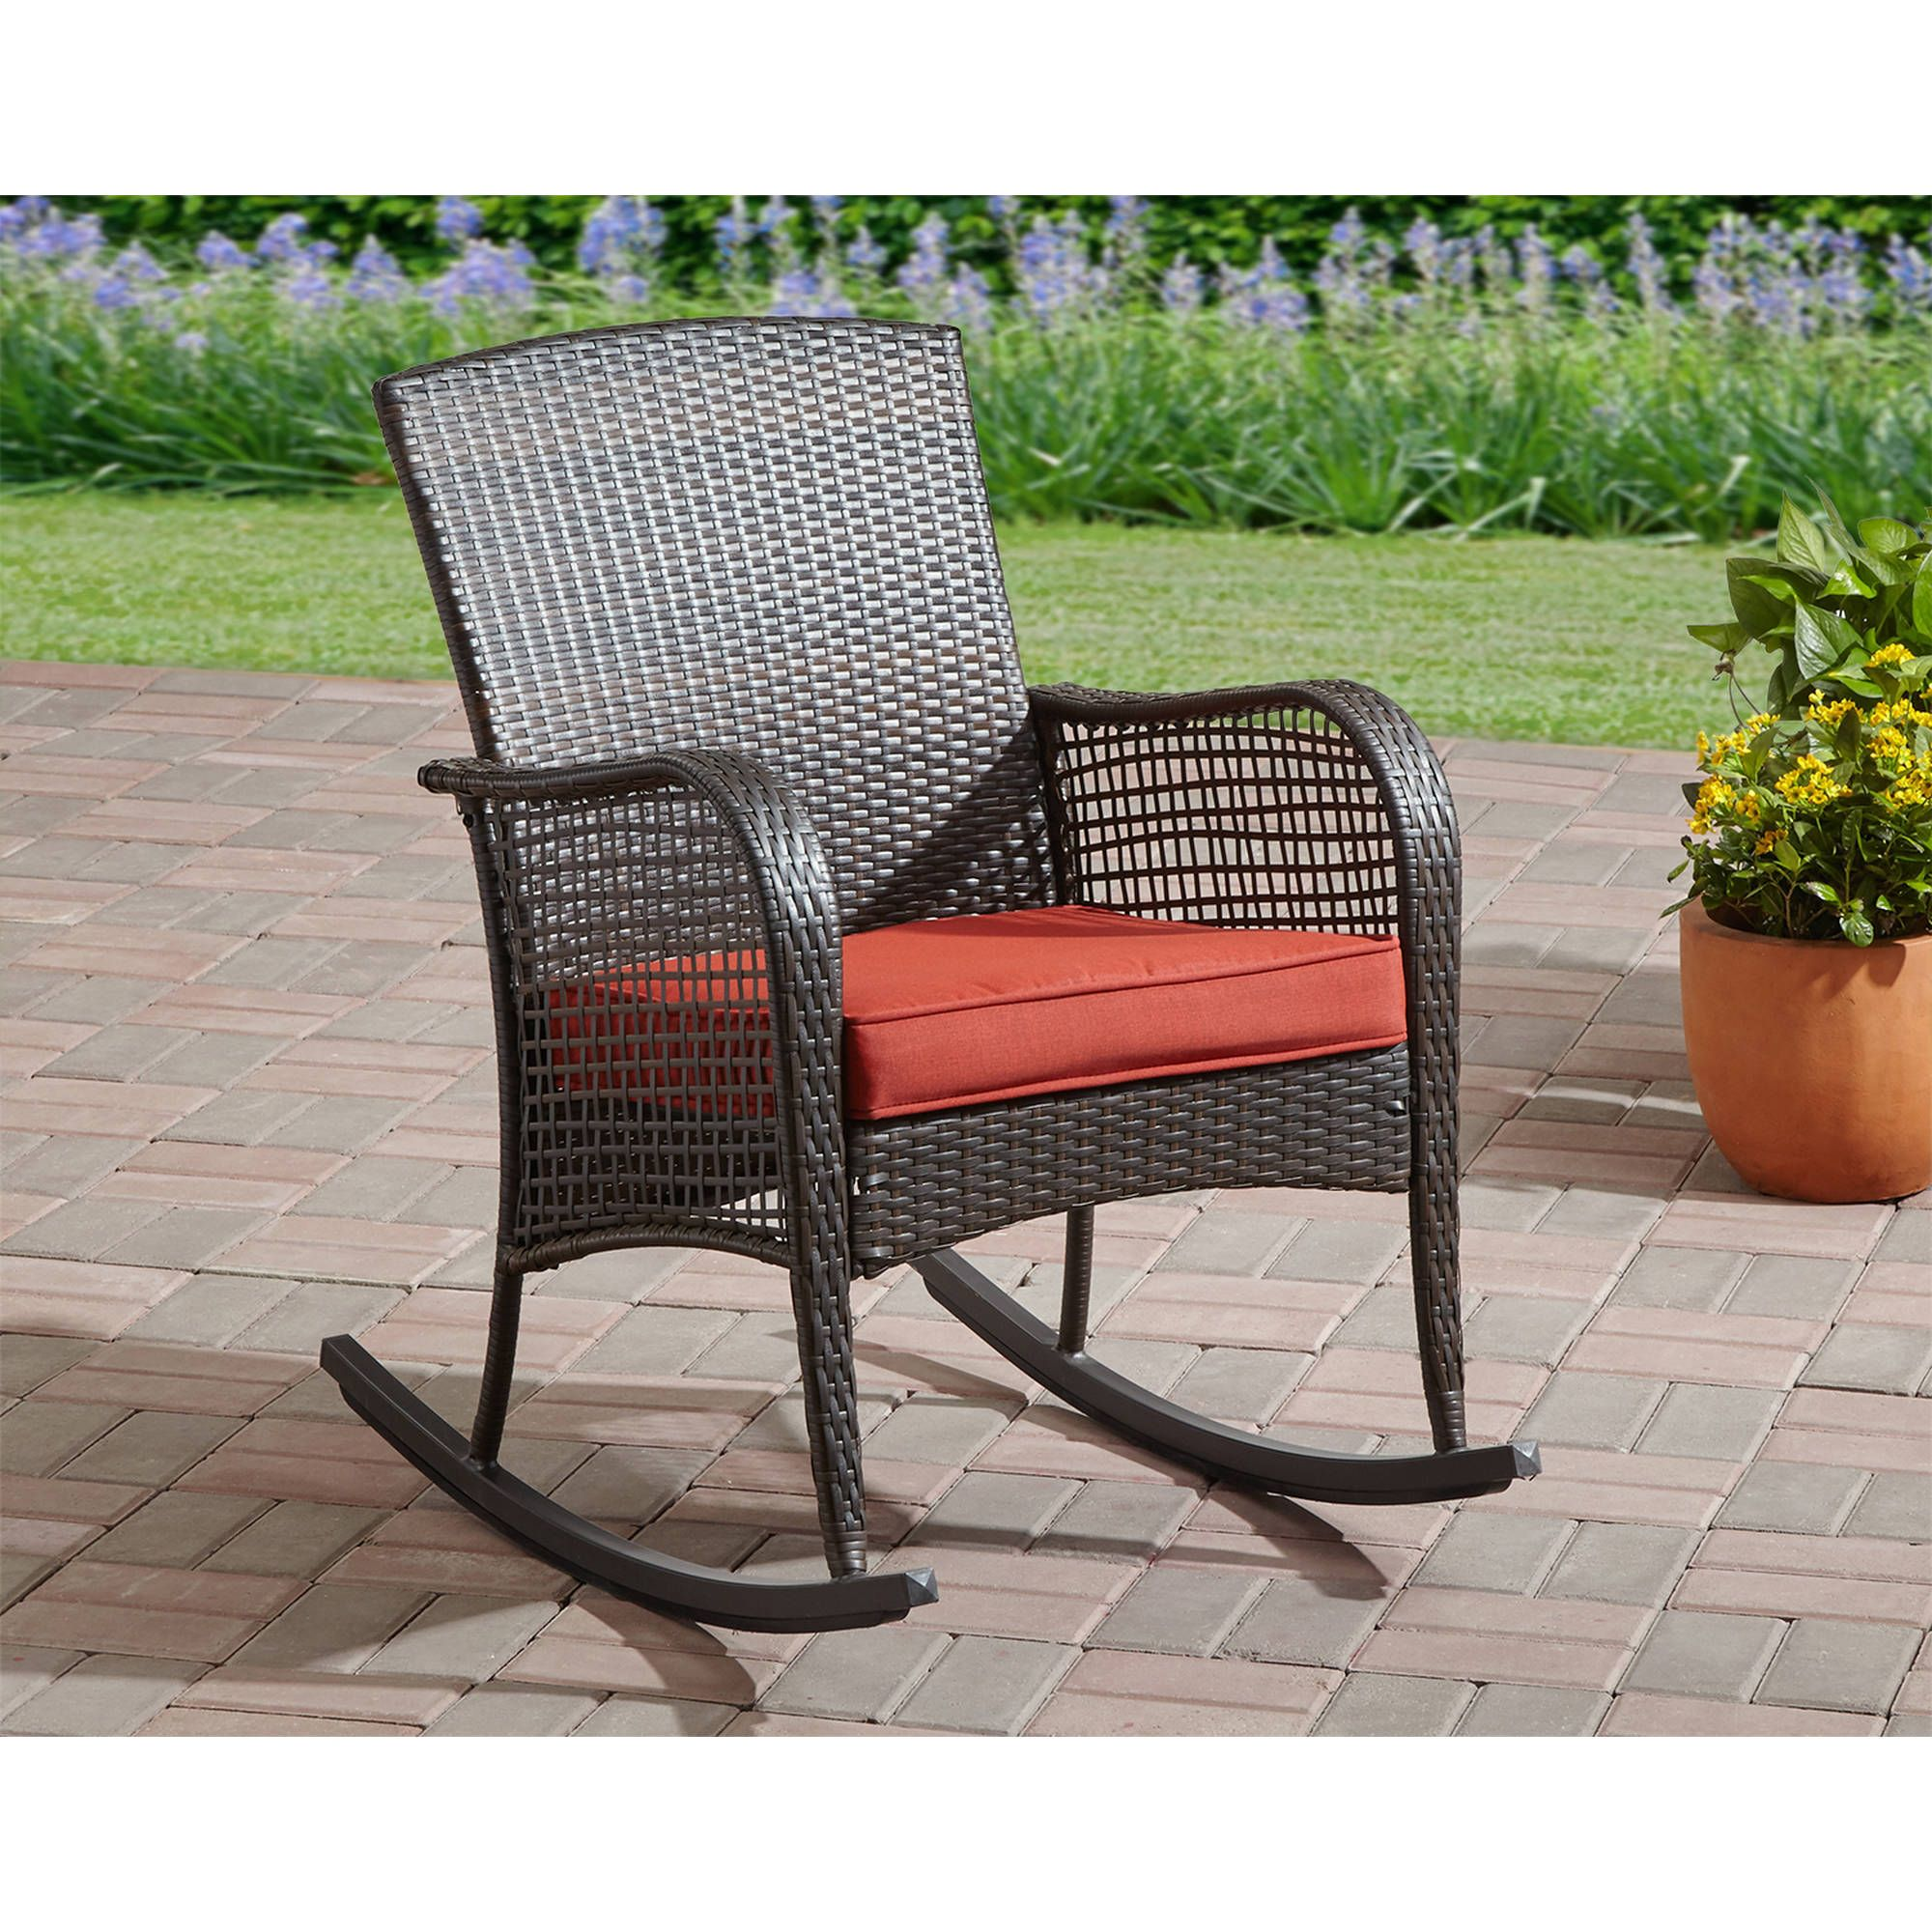 Install outdoor patio Chairs for Comfortable Sitting in